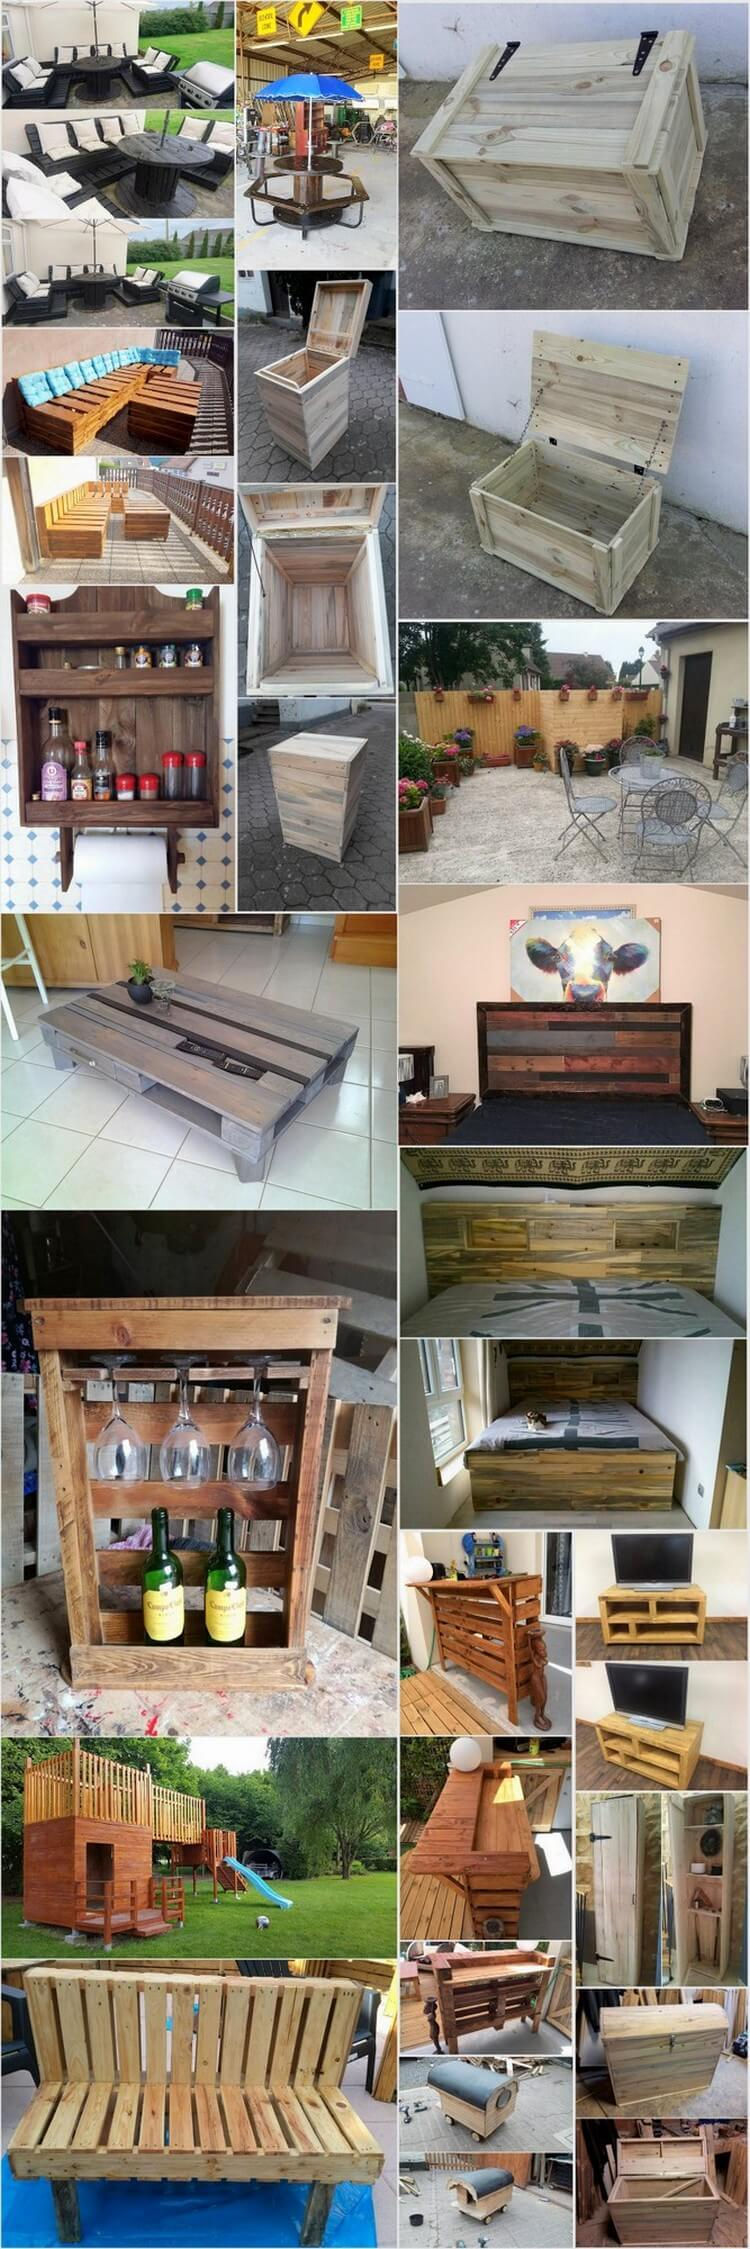 Ingenious DIY Ideas to Repurpose Old Wood Pallets